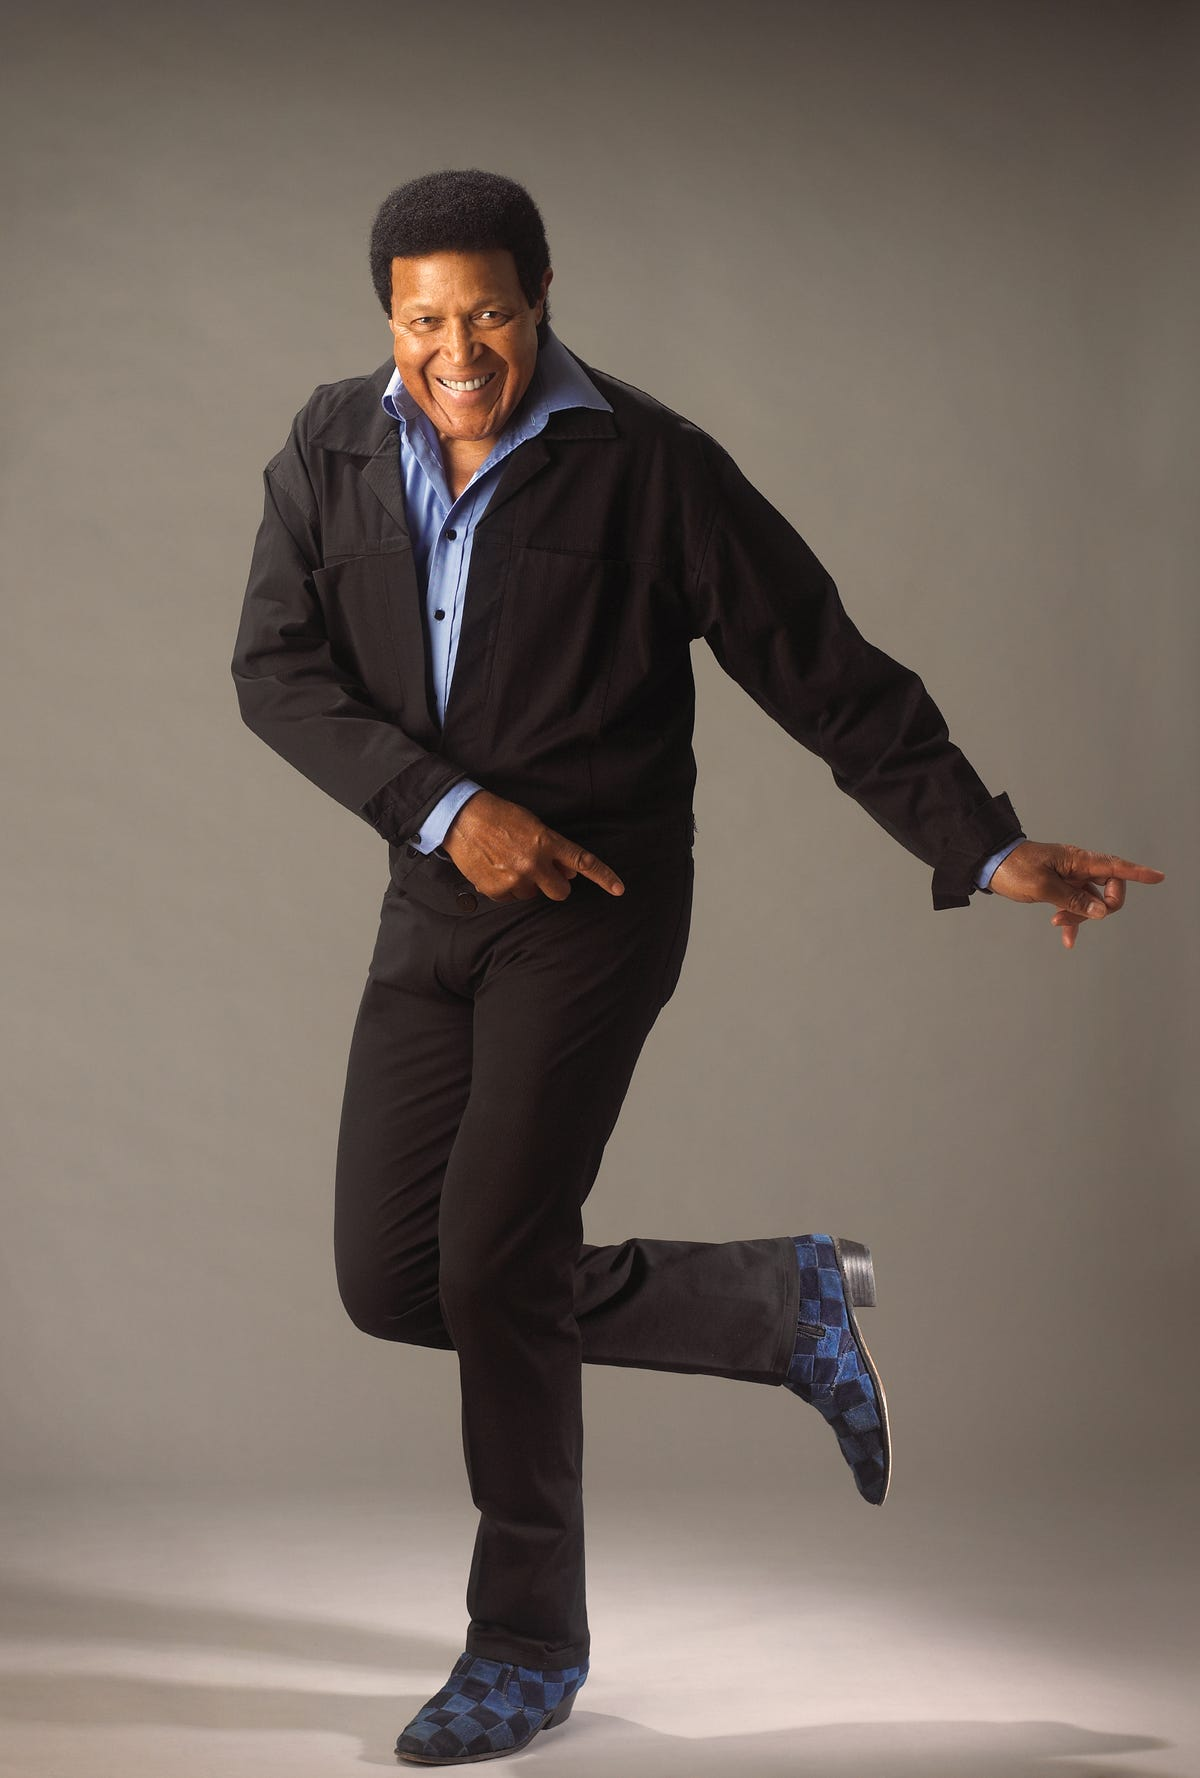 Rock Pioneer Chubby Checker At Tioga Downs On Saturday